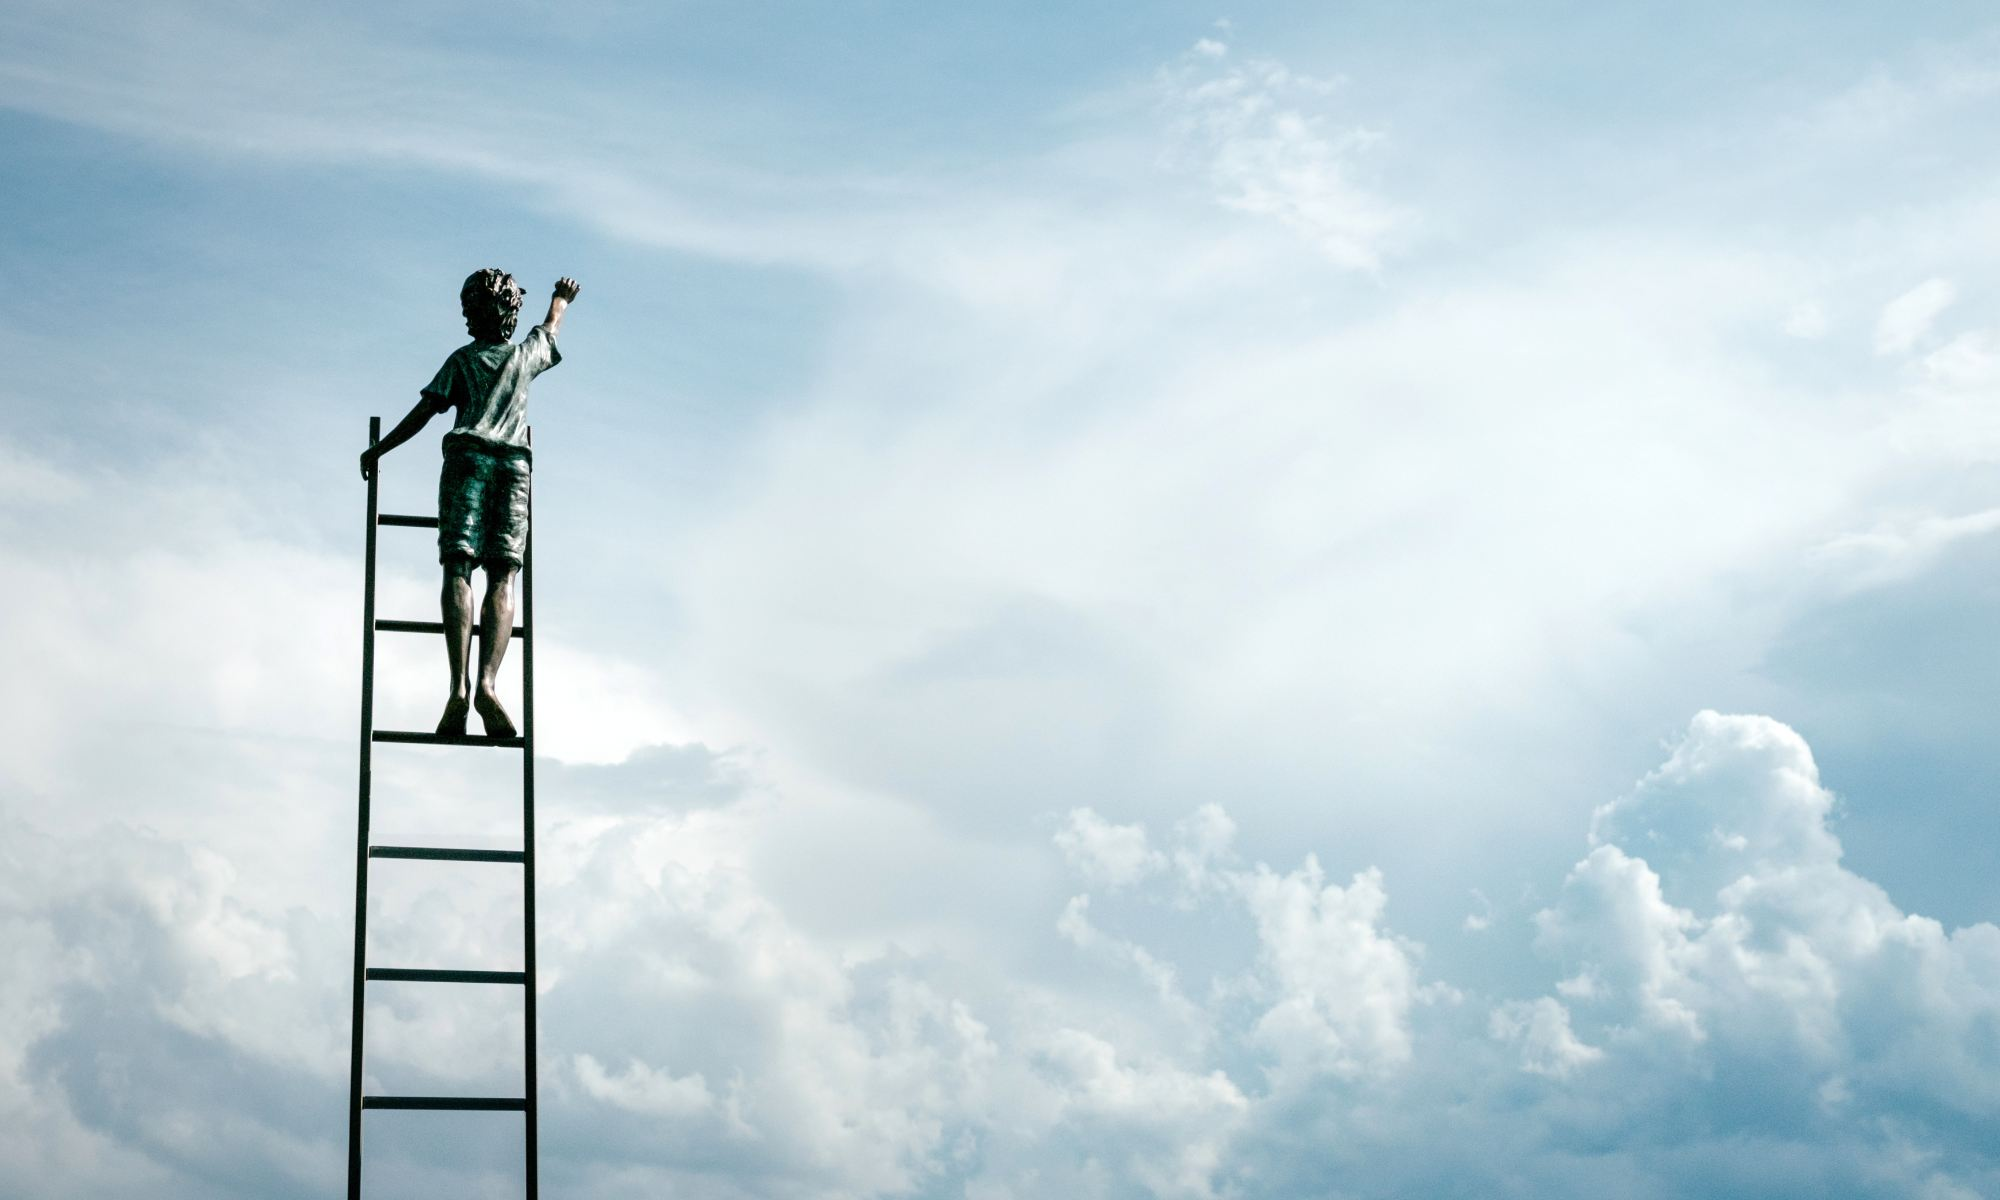 Inspired boy standing on ladder reaching for the clouds